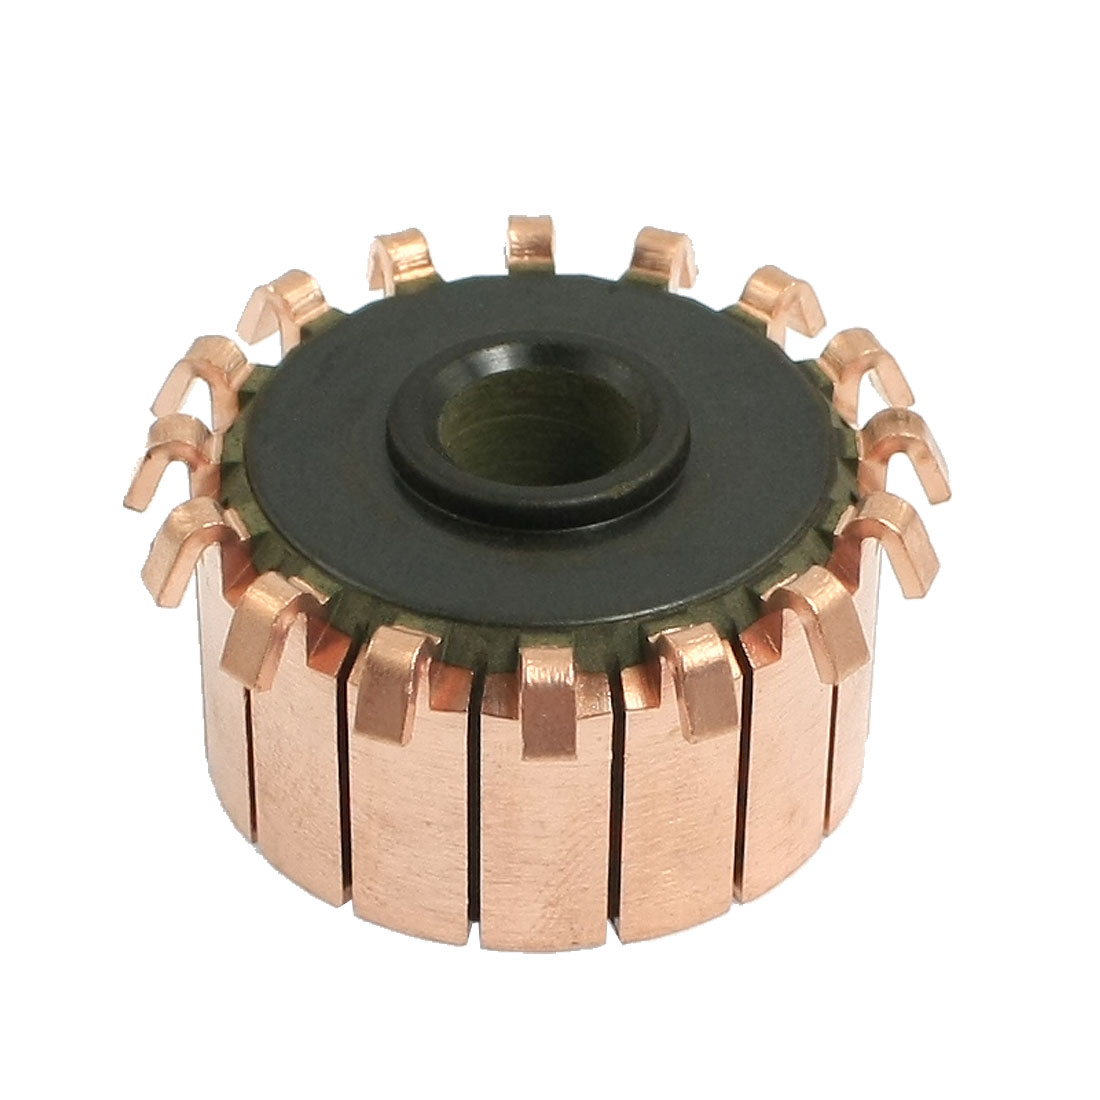 8mm x 28.5mm x 16mm 16 Copper Tooth Motor Commutator for Power Tool Appliance